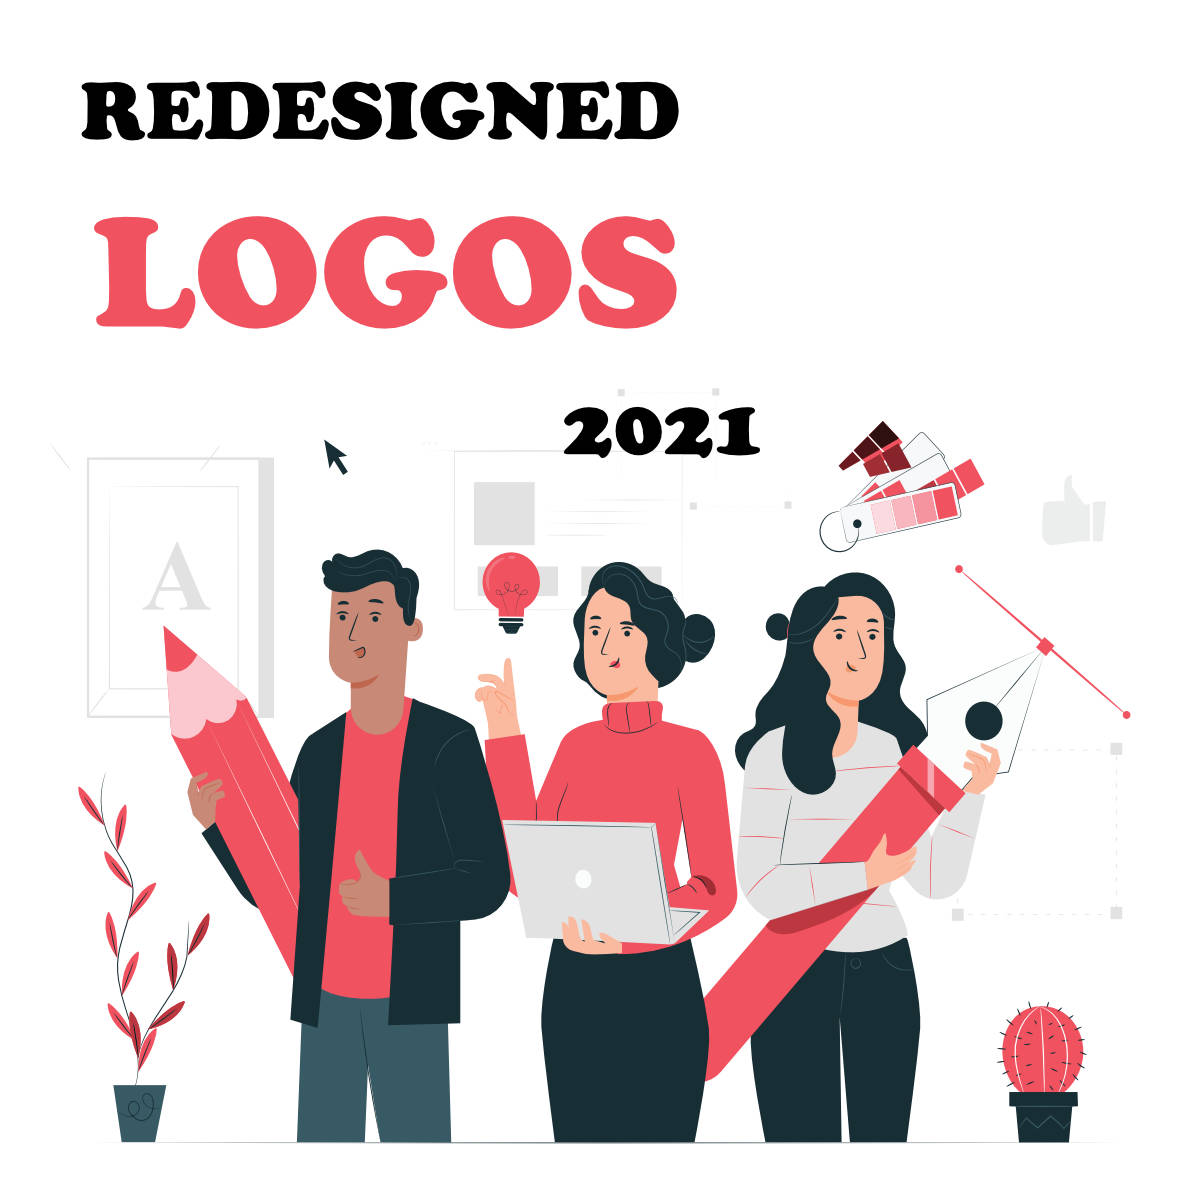 Logos redesigned in 2021 Visually Simplified